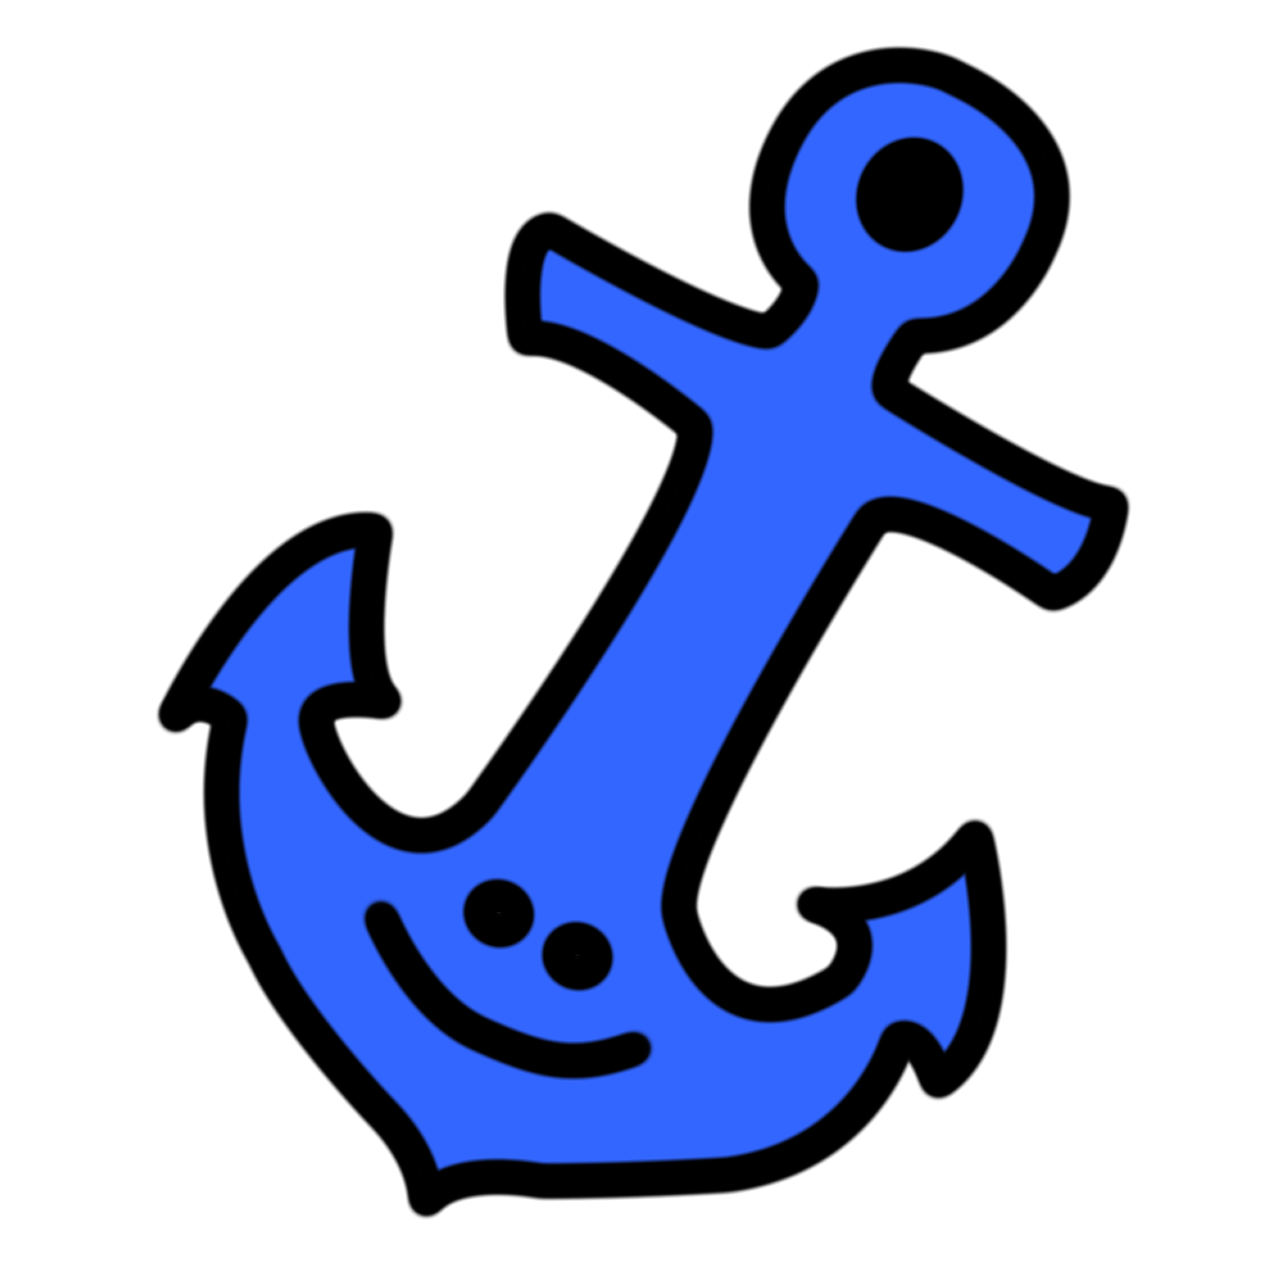 Anchor and fish clipart free stock Boat, Anchor Clipart Sea Ocean Fisherman Costa W #boat, #anchor ... free stock